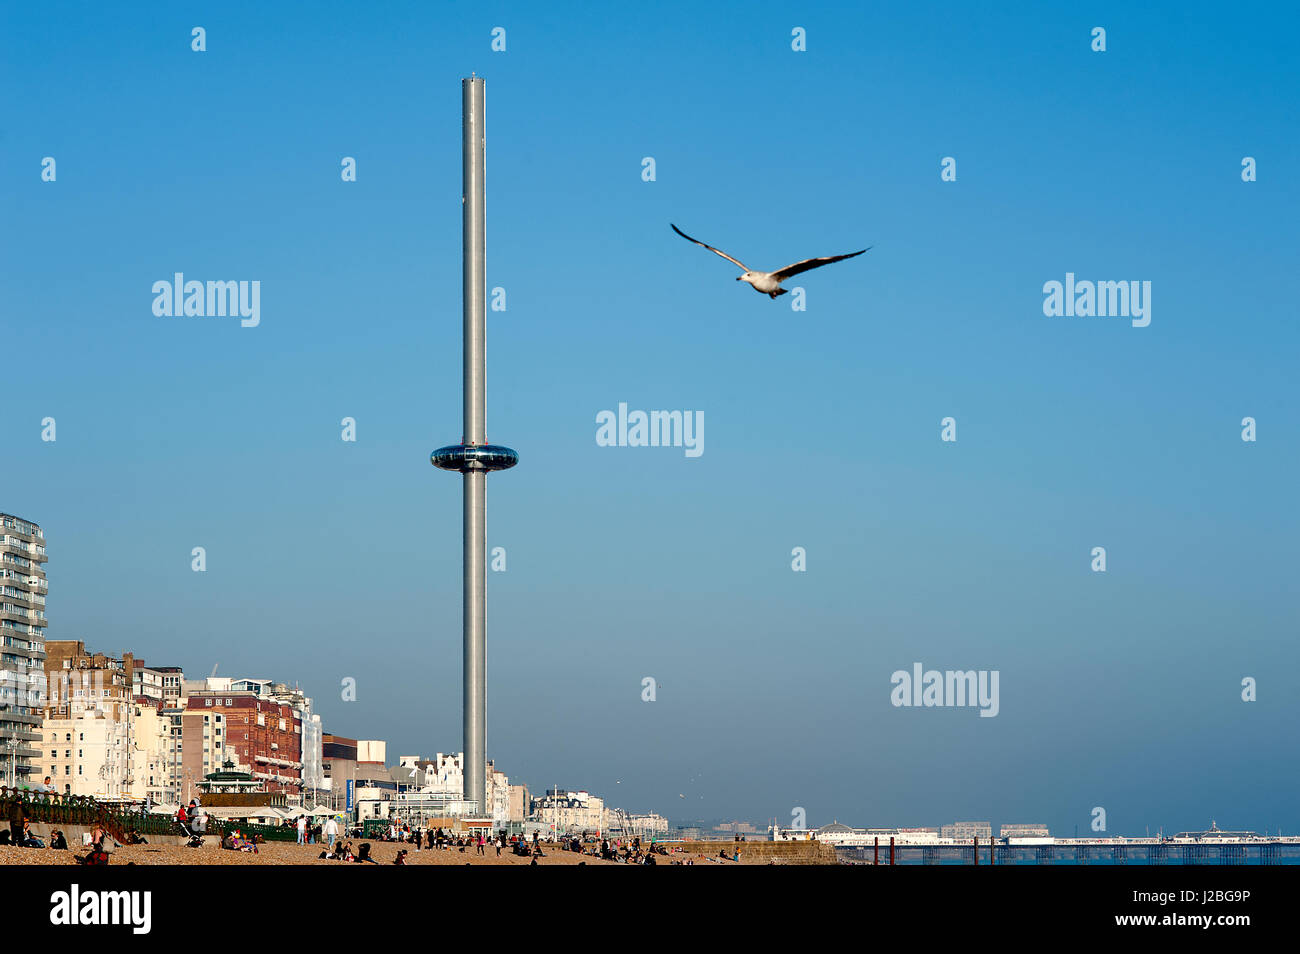 i360, Brighton, U.K, 2016. The British Airways i360 is the world's tallest moving observation tower and opened - Stock Image